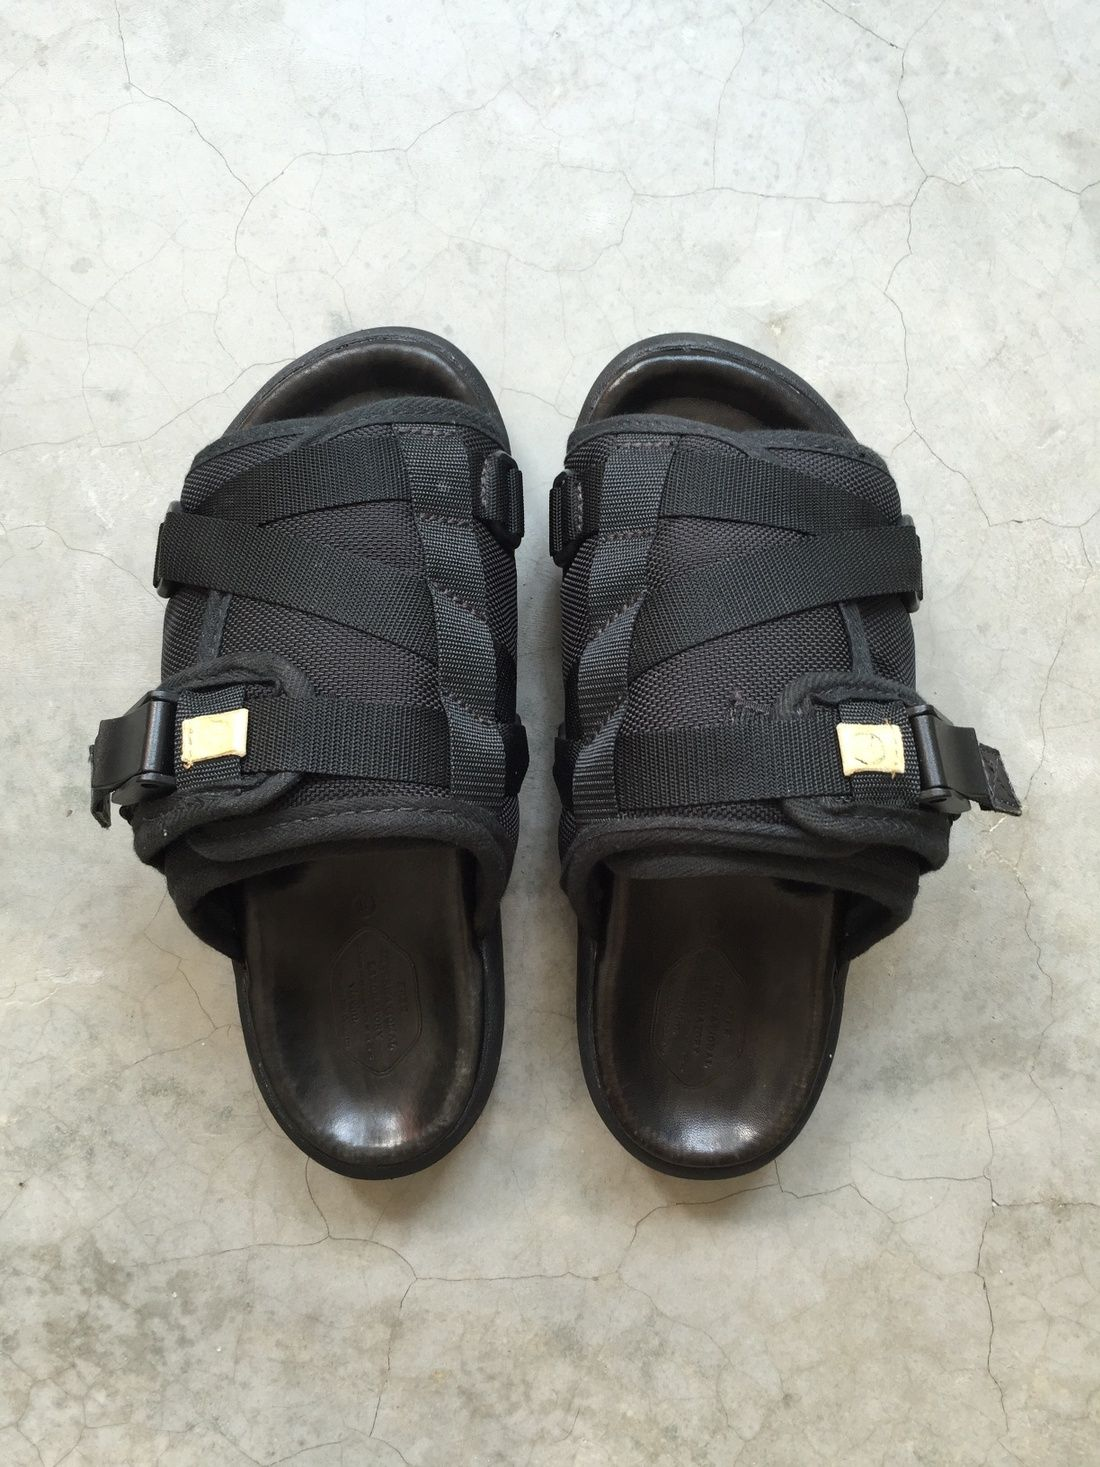 d60f0c93e Christo Sandals Ballistic Size S | Cool stuff sold on Grailed ...